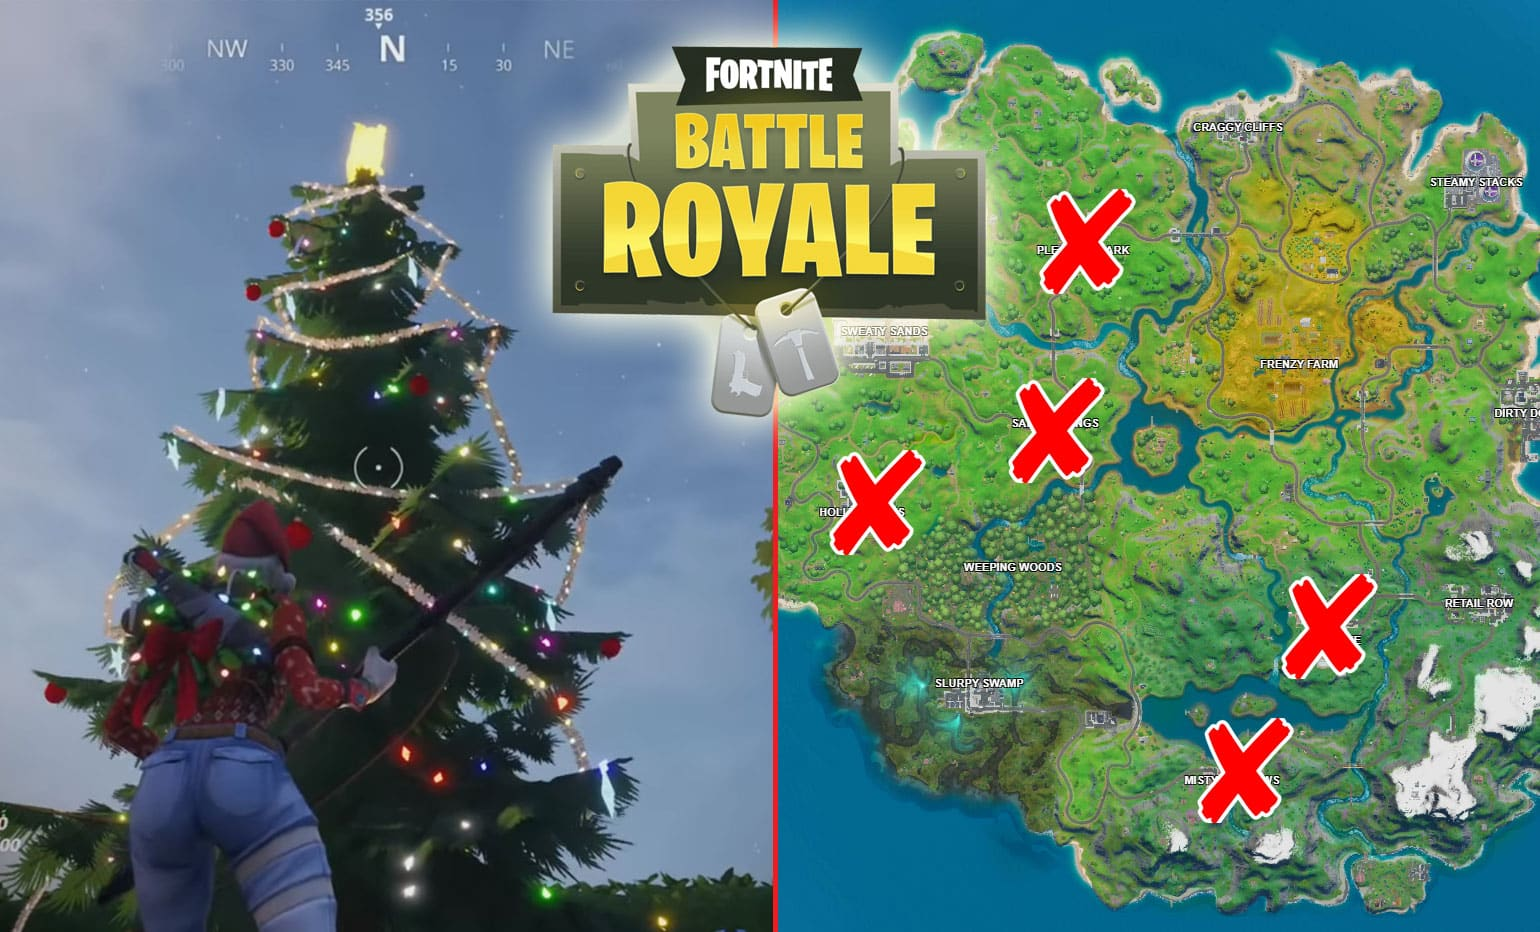 Dance At Fortnite Holiday Trees in Different Named Locations